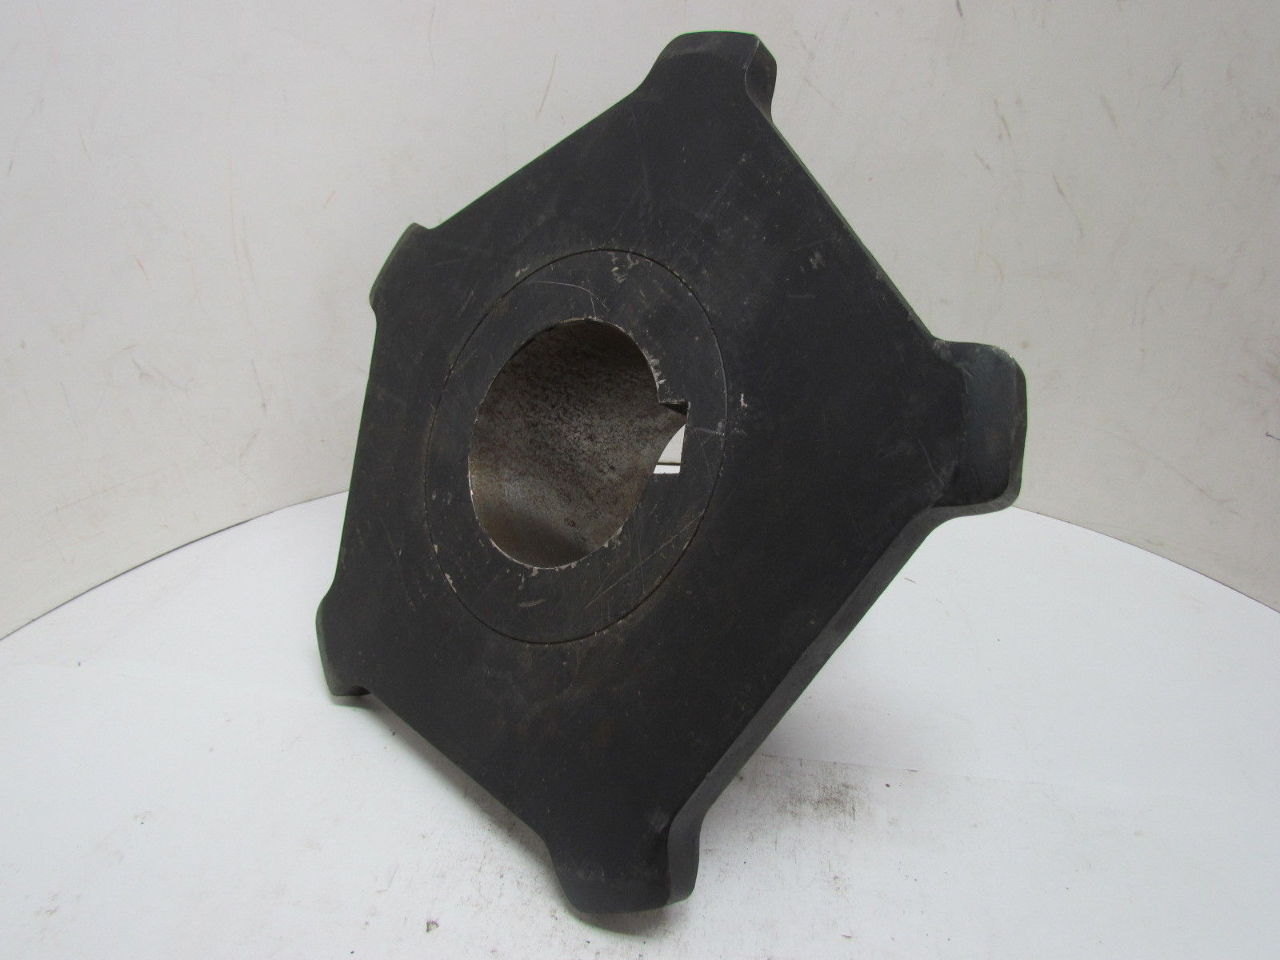 Drop Forged Chain : Tsubaki tooth sprocket for drop forged rivetless